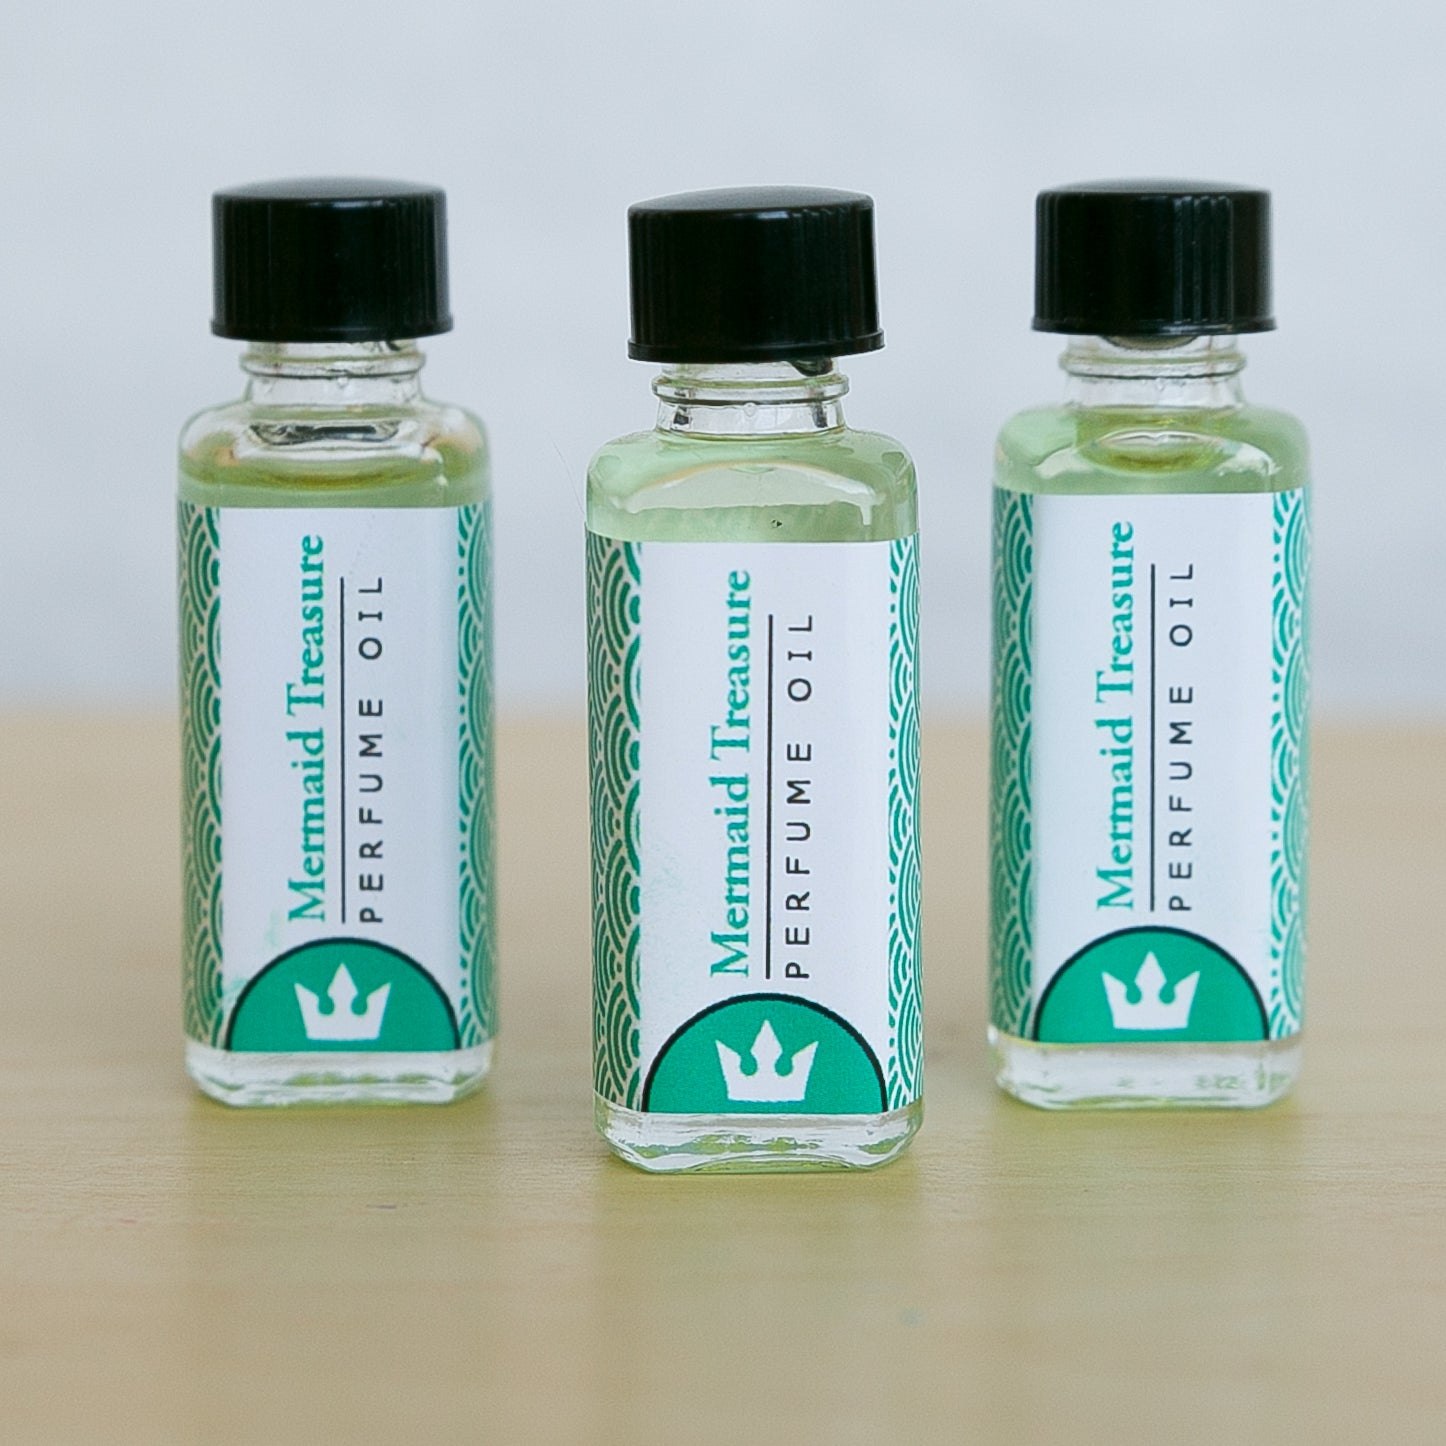 Mermaid Treasure Perfume Oil